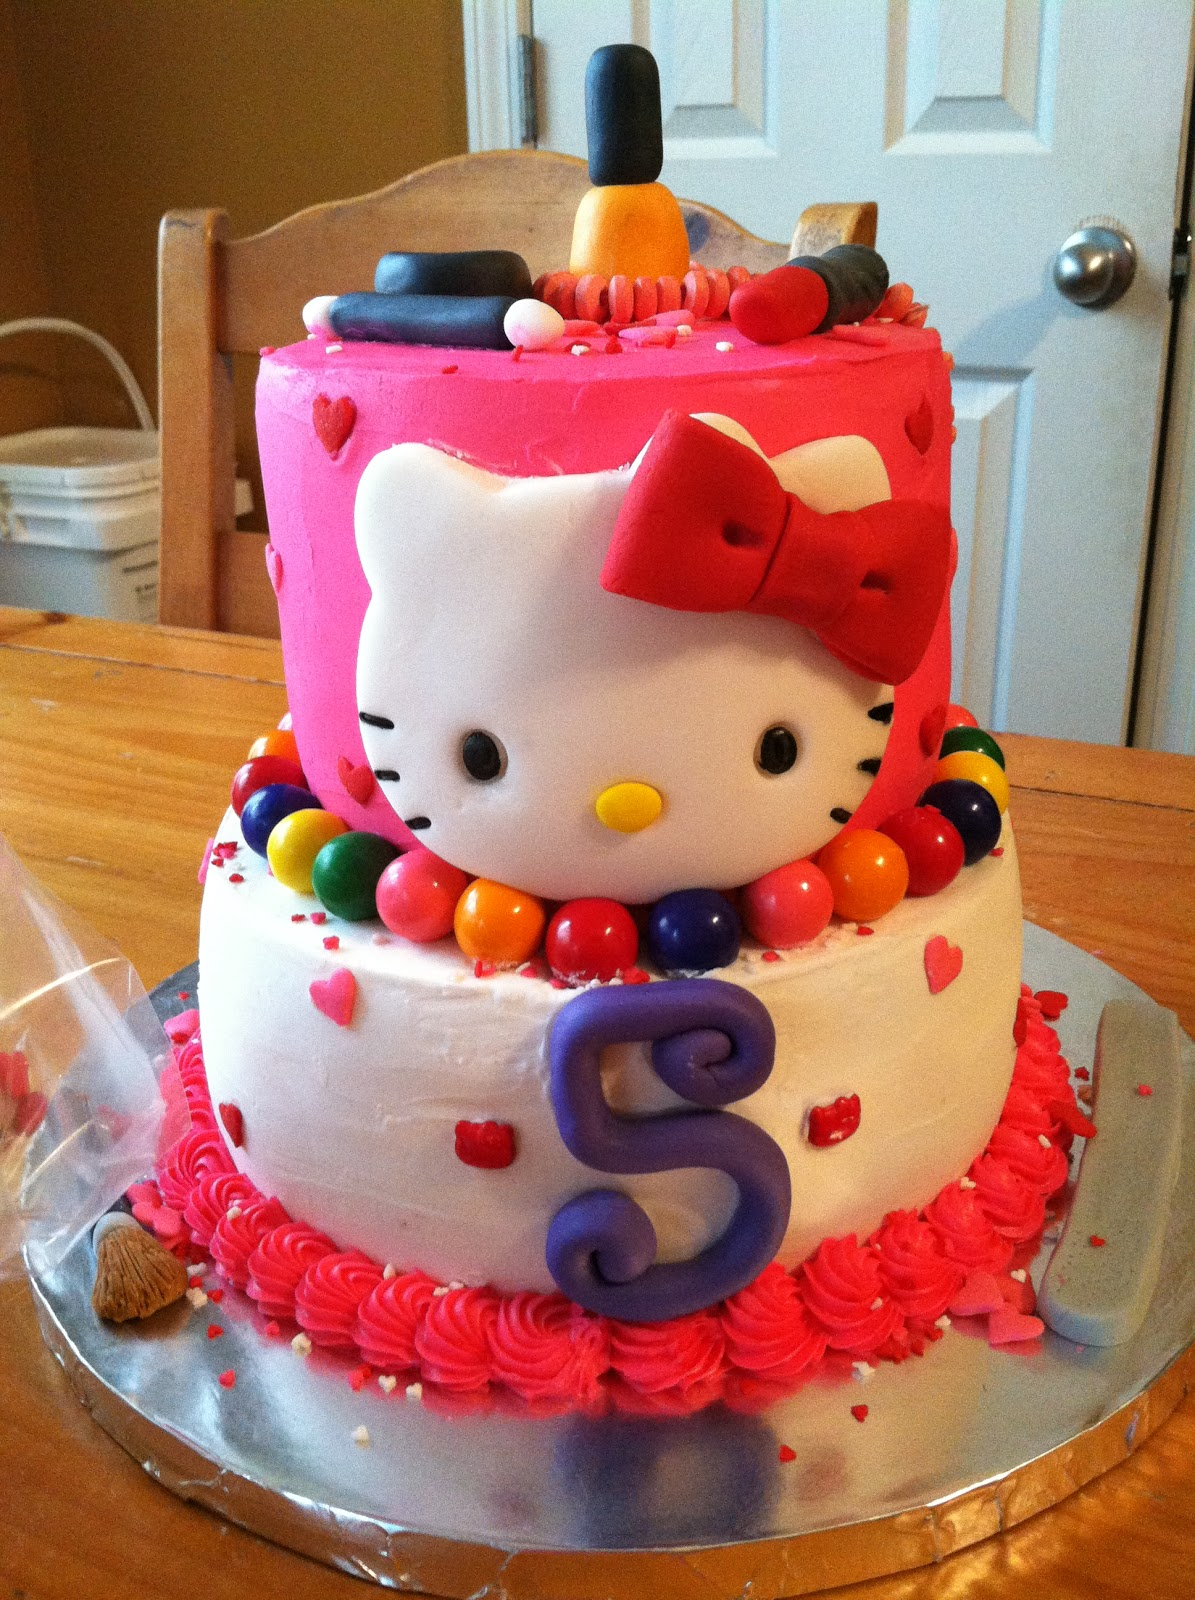 Introducing Hello Kitty cake for a 5 year old Fashionista